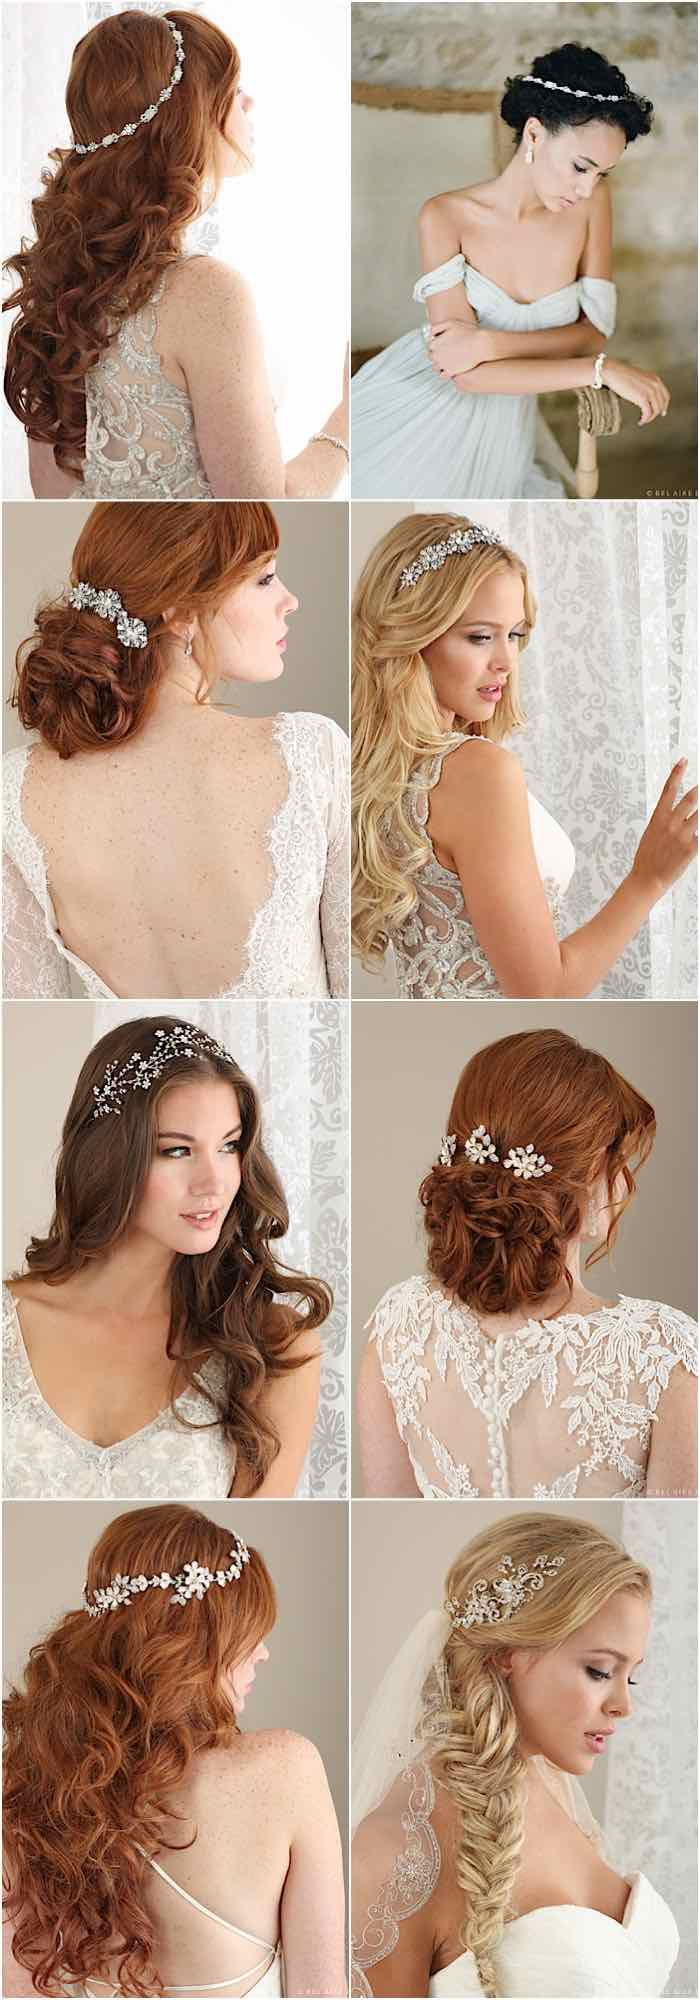 wedding-hairstyles-collage2-12302015nz